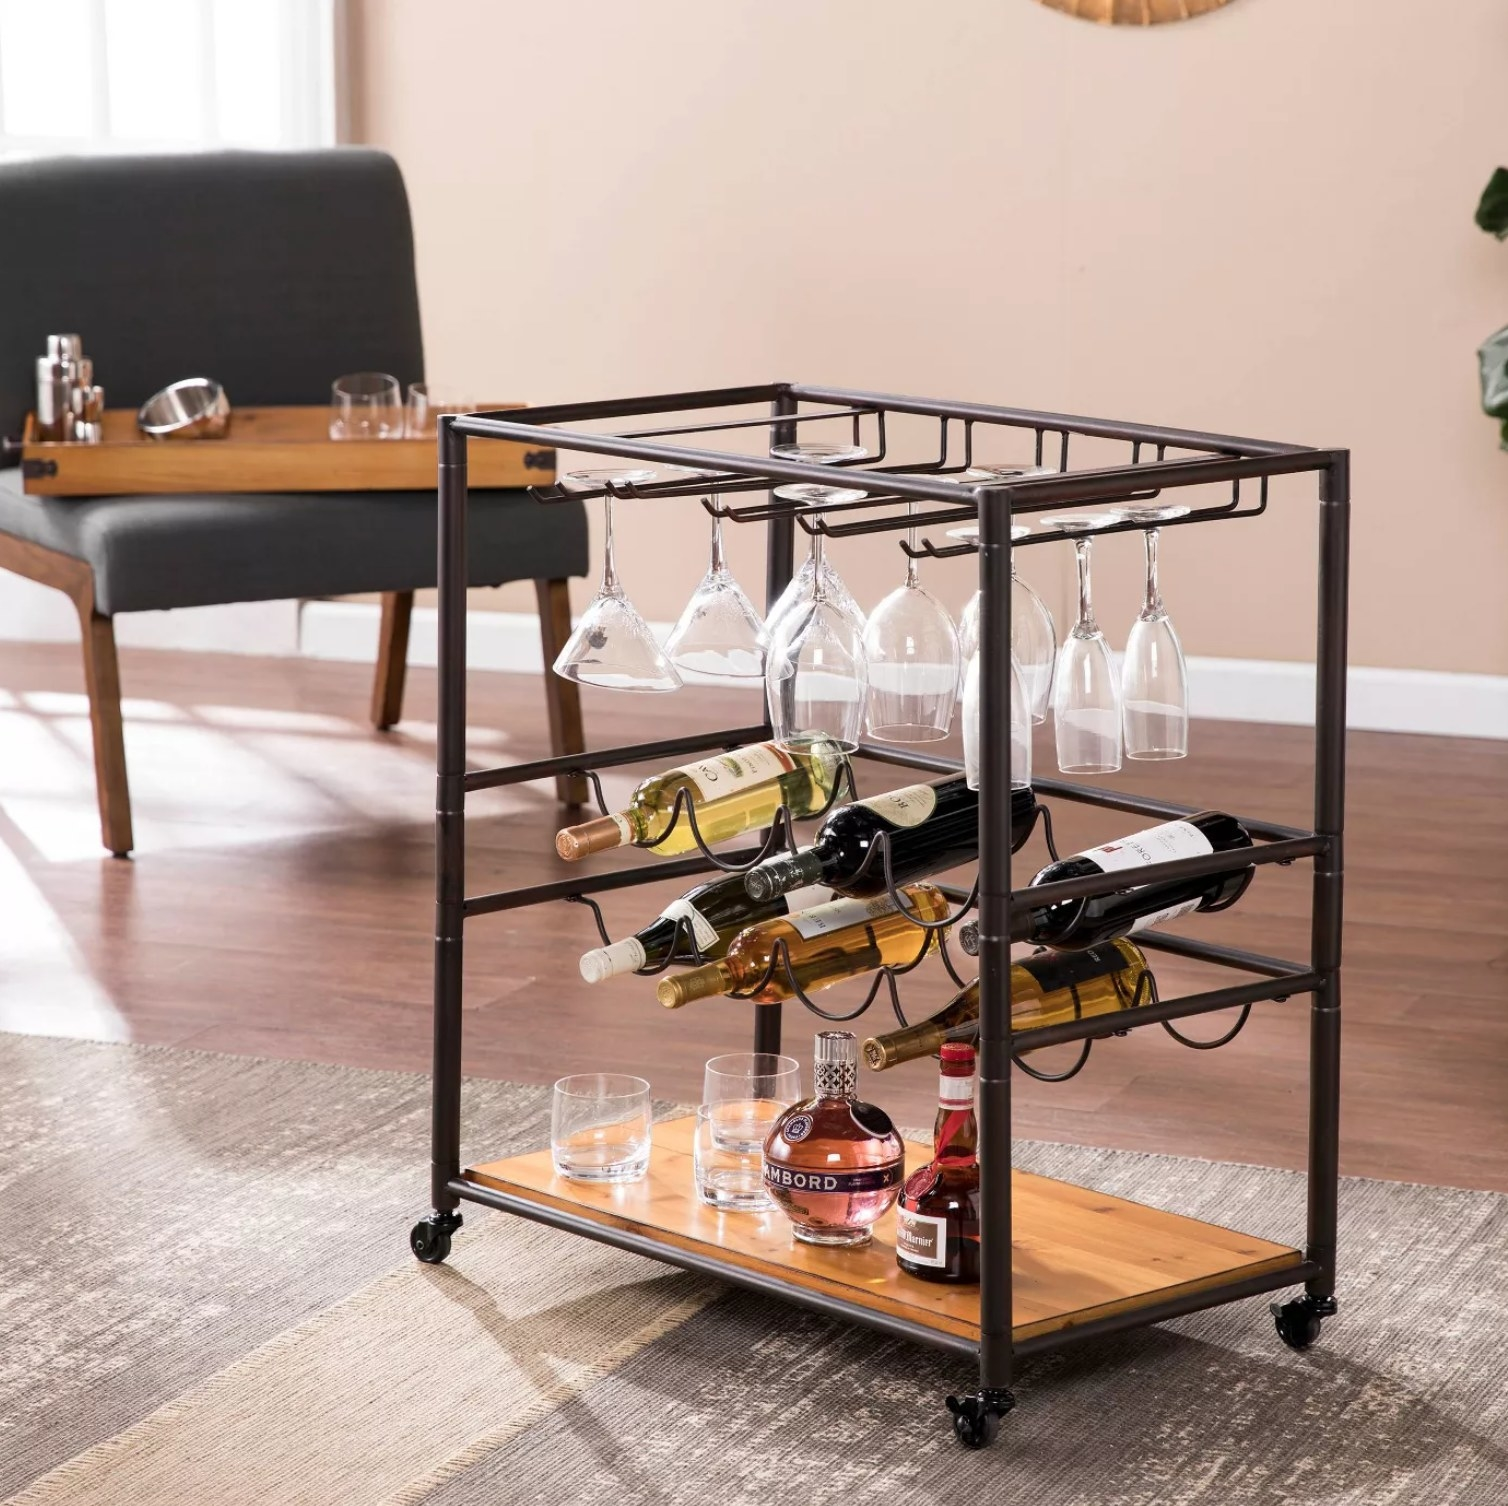 The rack holding bottles of wine and wine glasses